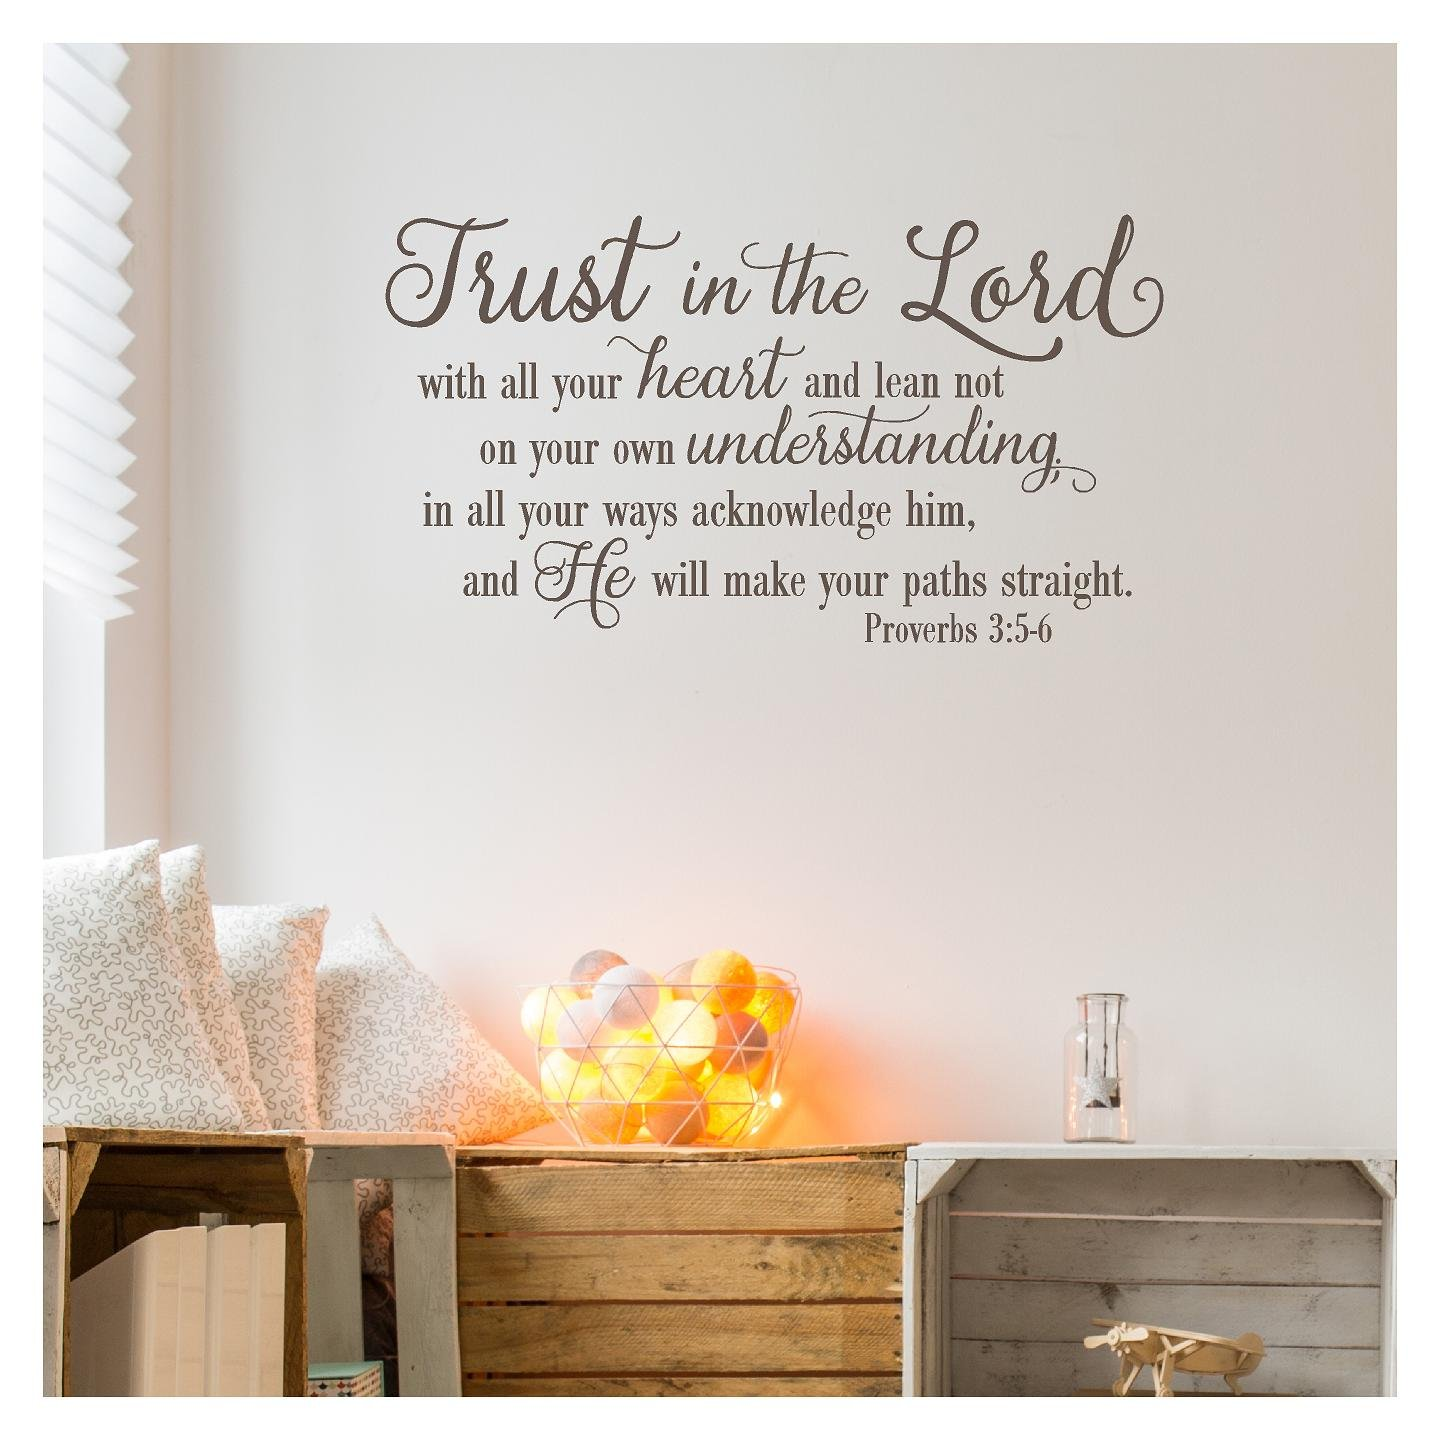 Trust in the Lord With All Your Heart..Proverbs 3:5-6 Vinyl Lettering Wall Decal Sticker (16.5''H x 30''L, Metallic Bronze)